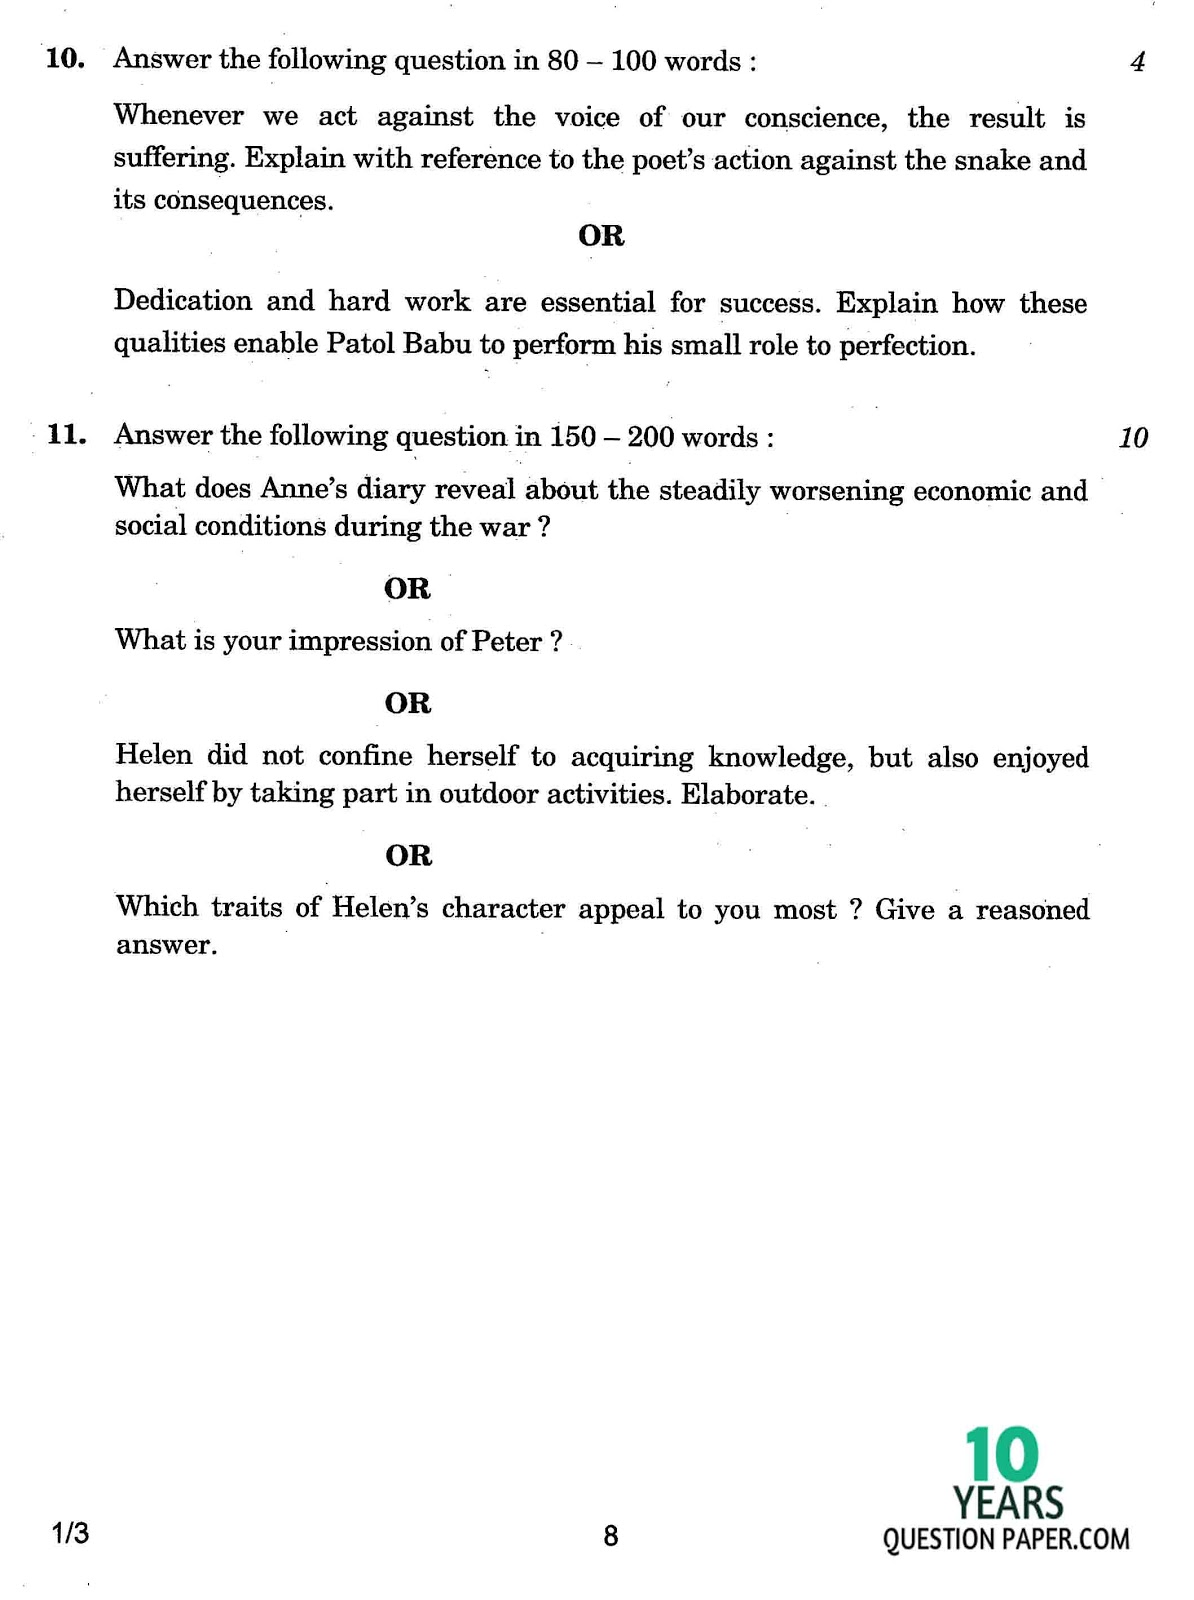 cbse class 10th 2017 English question paper